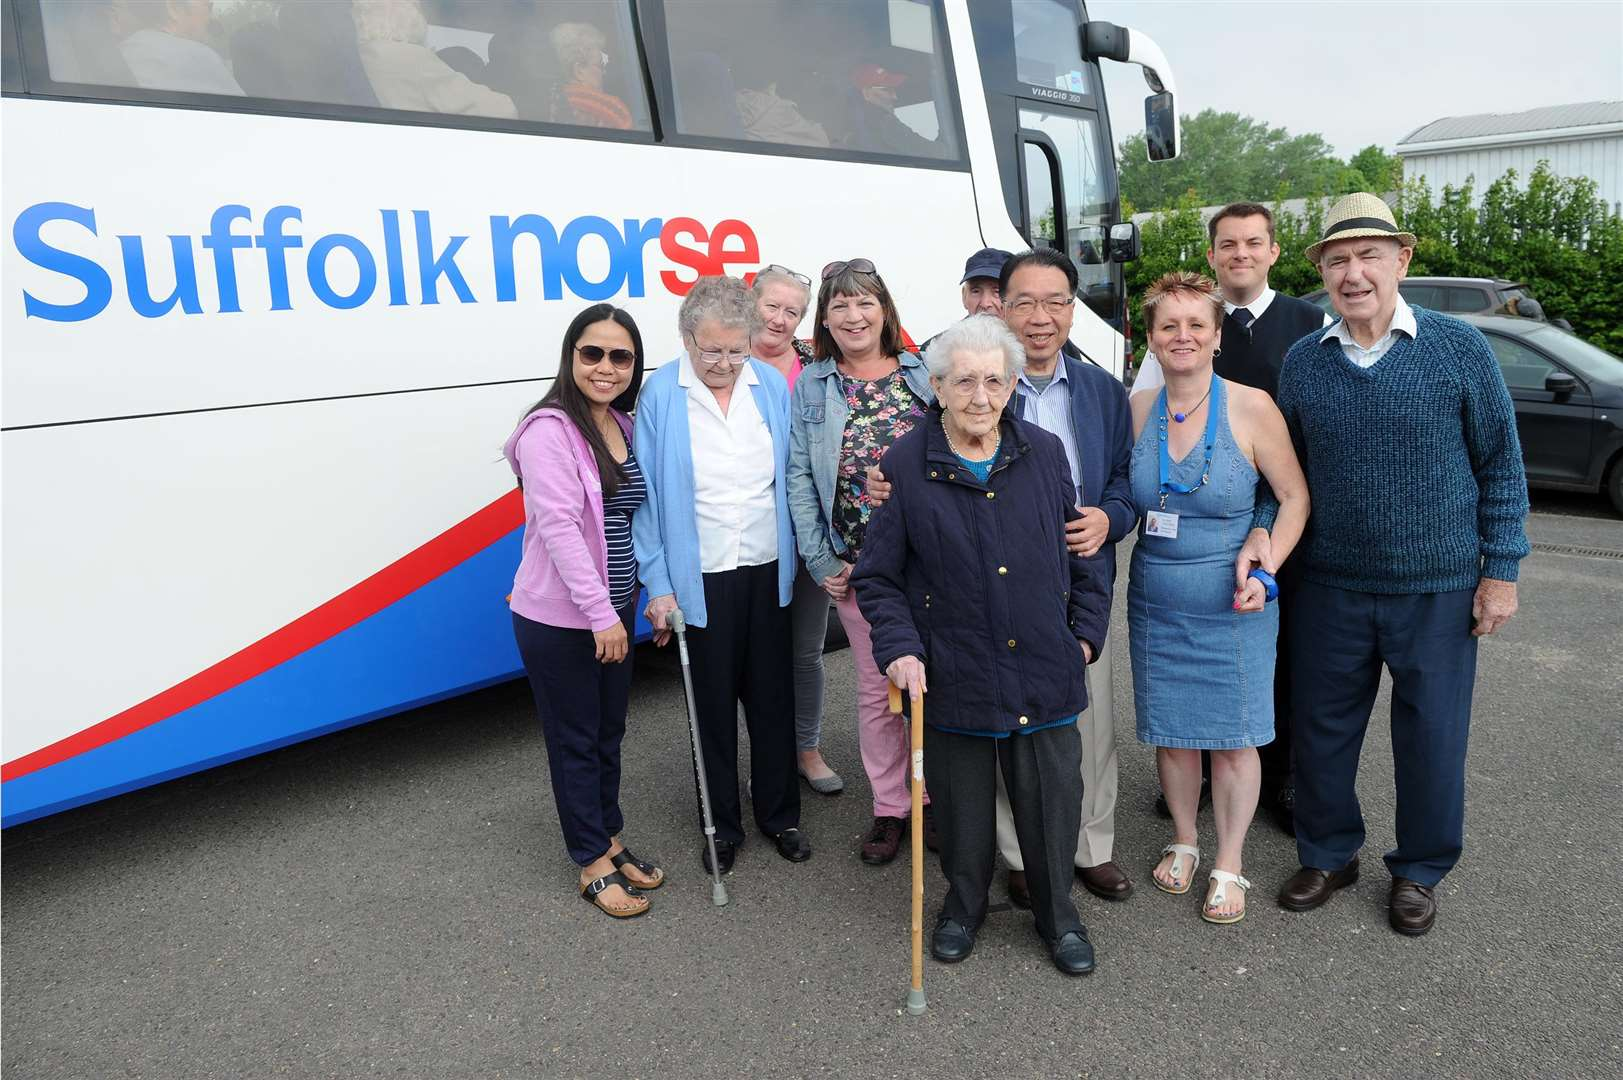 Suffolk Norse provided Gatehouse with a 54 seat coach for the charity's trip to FelixstowePictured: Cllr Patrick Chung, Elaine Channen (Gatehouse), Driver with Suffolk Norse, Clients, Carers and FamilyPICTURE: Mecha Morton (1987399)